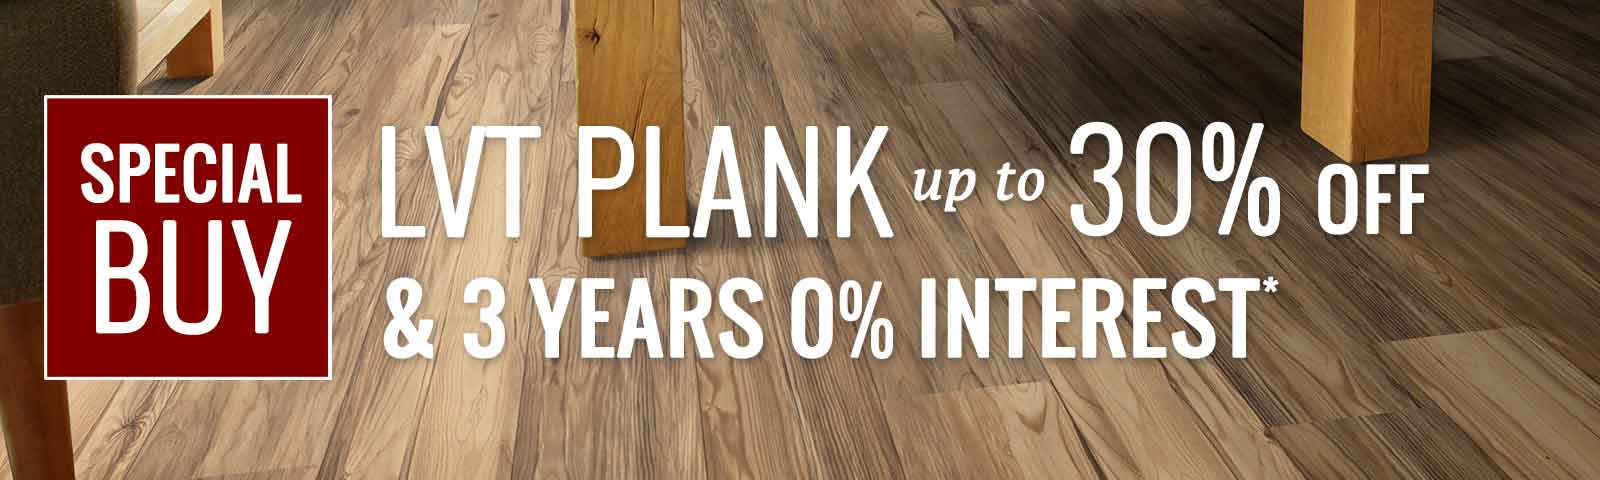 30% Savings on Wood Look Waterproof Vinyl Plank Flooring, Pittsburgh